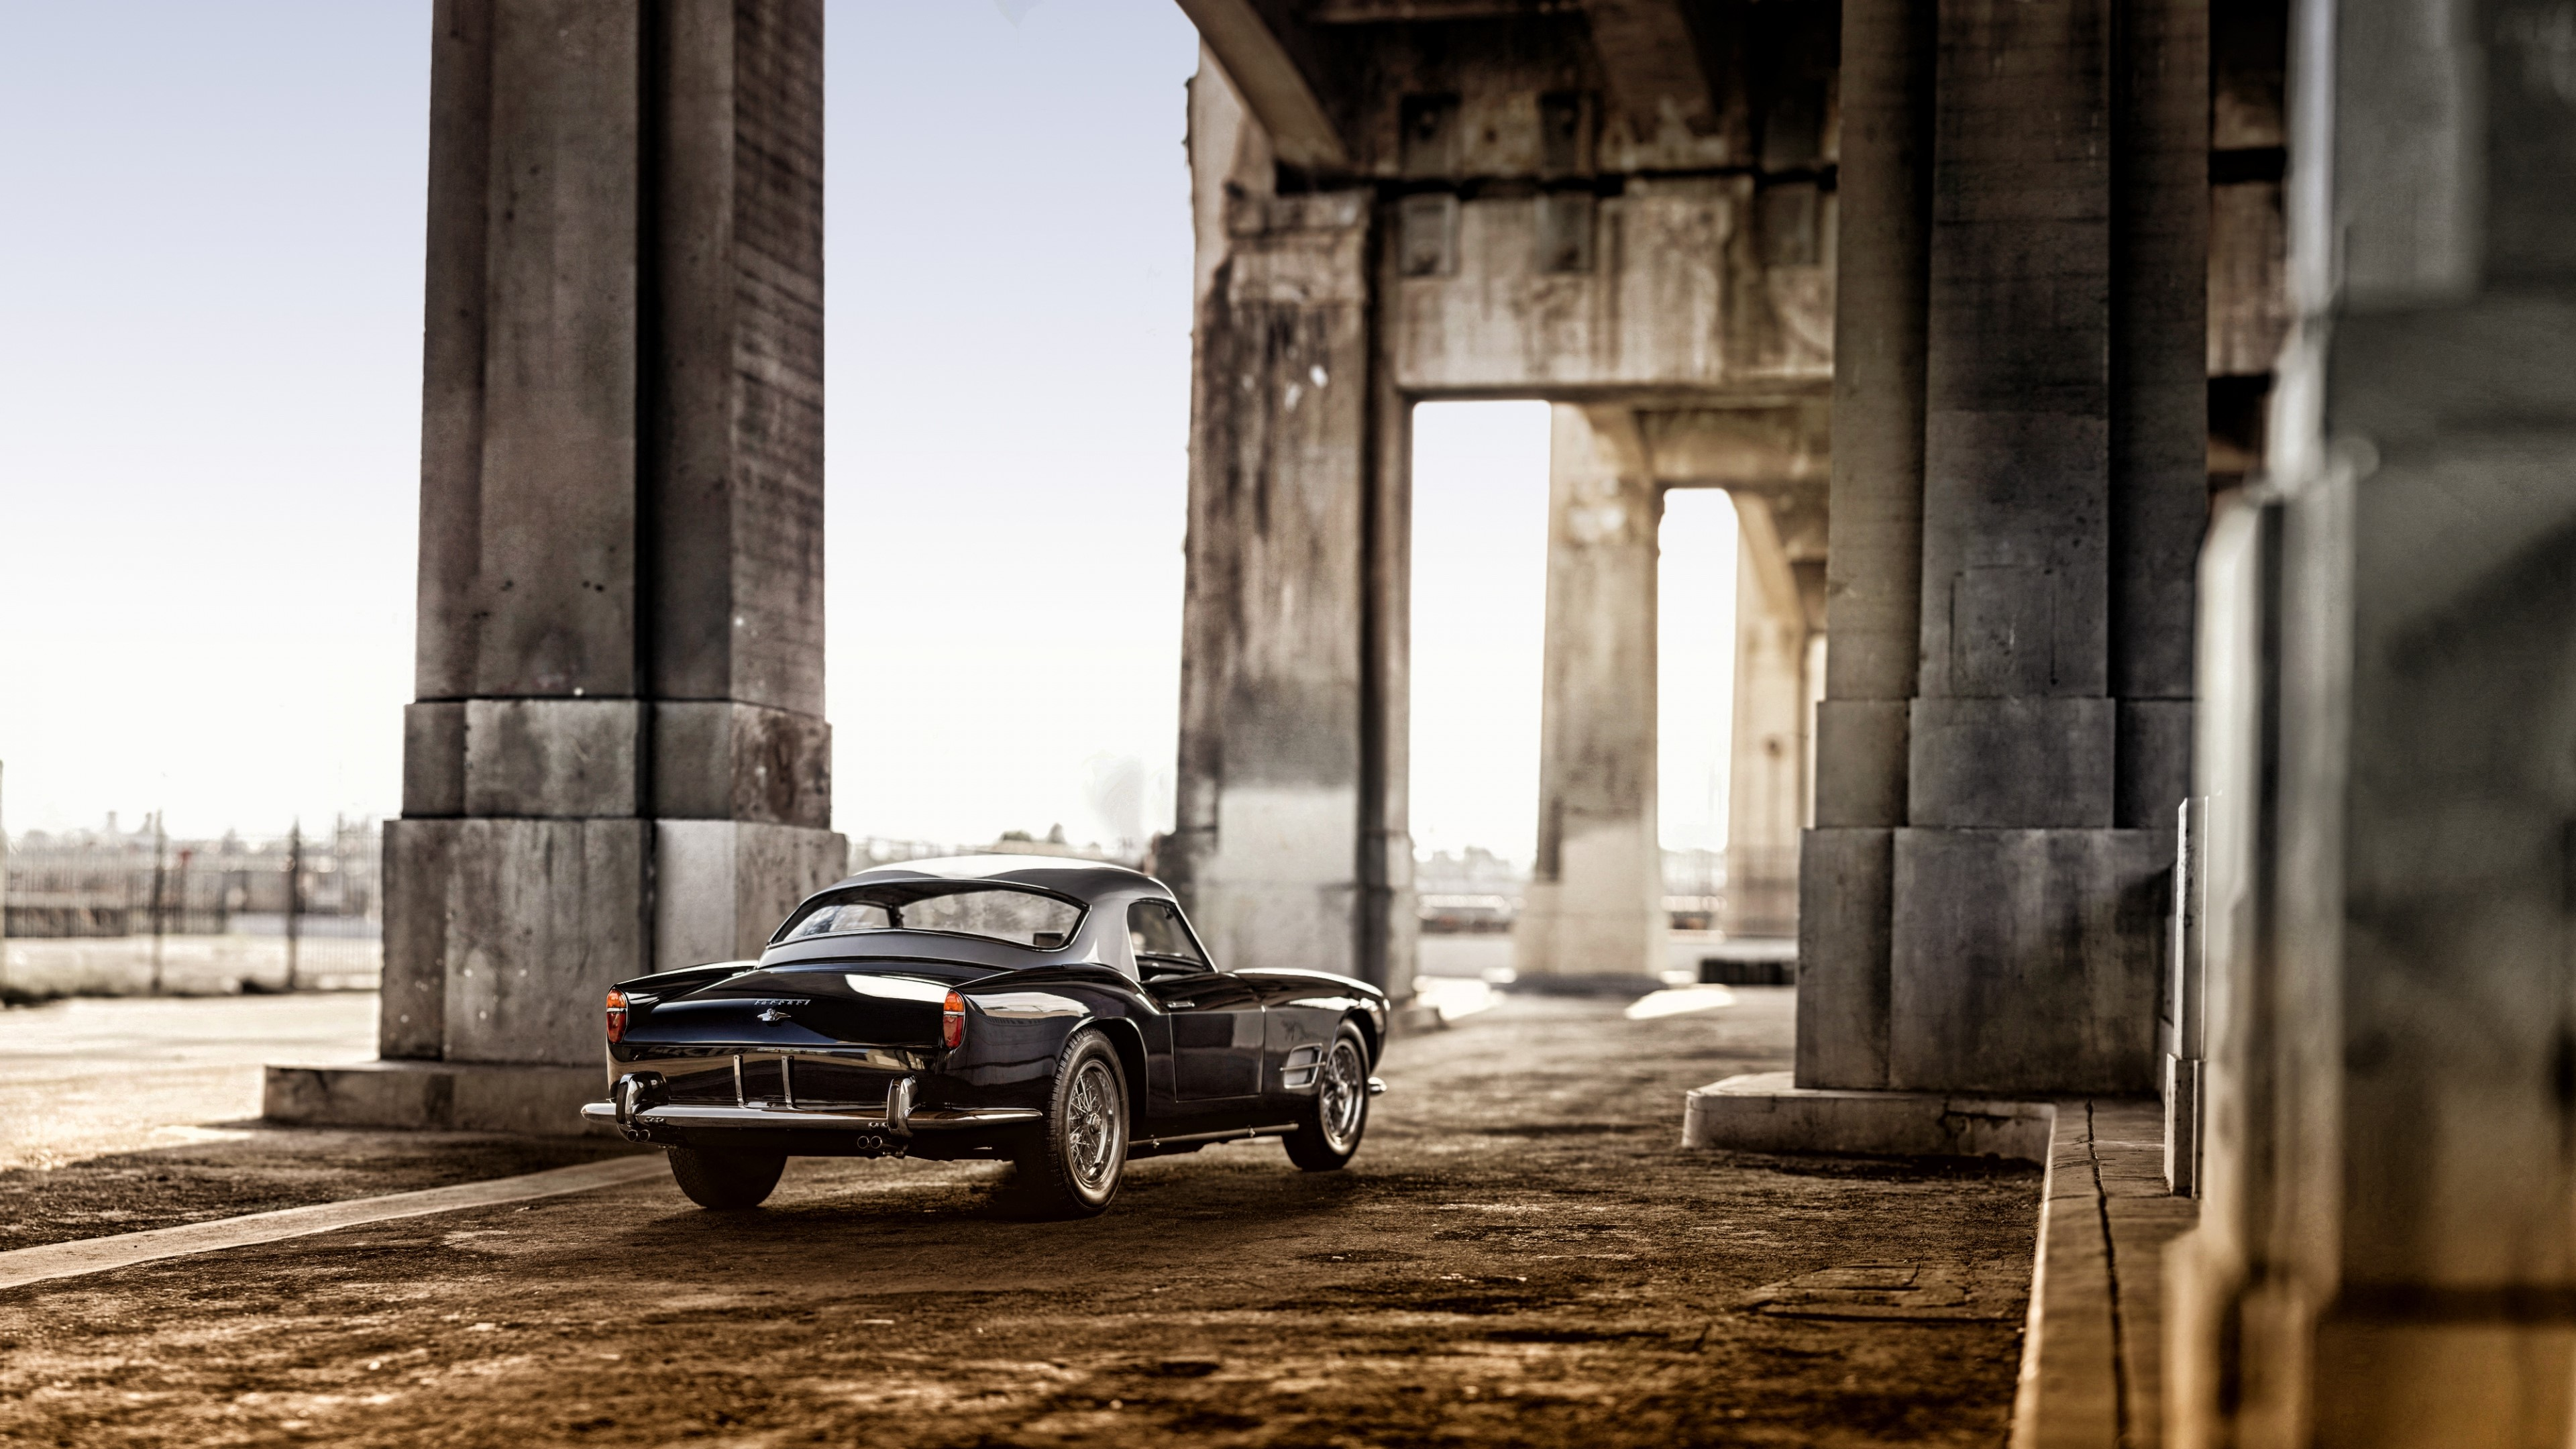 Wallpaper Ferrari 250 GT 1959